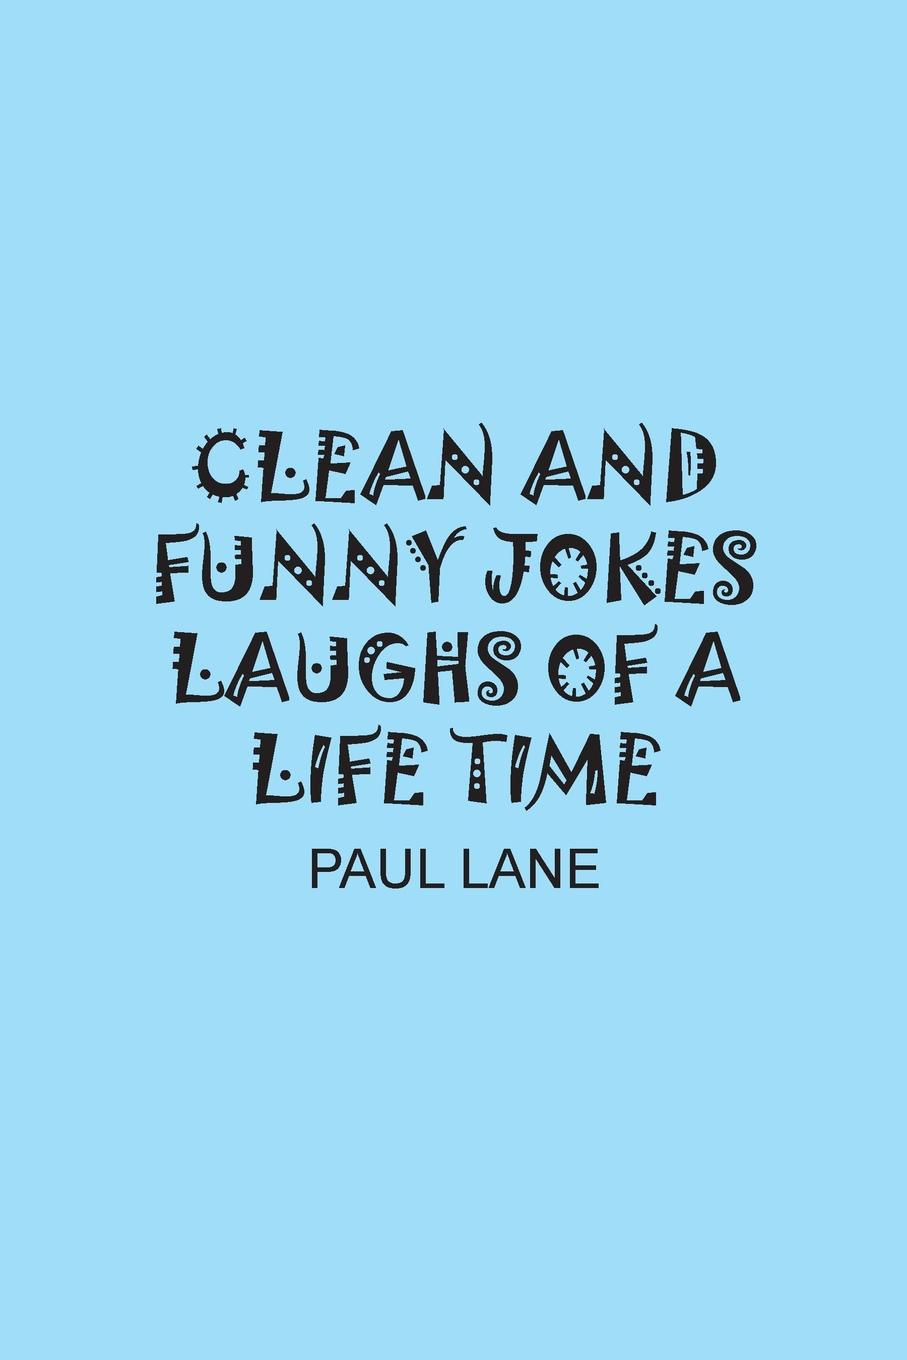 PAUL LANE CLEAN AND FUNNY JOKES LAUGHS OF A LIFE TIME путешествие времени voyage of time life